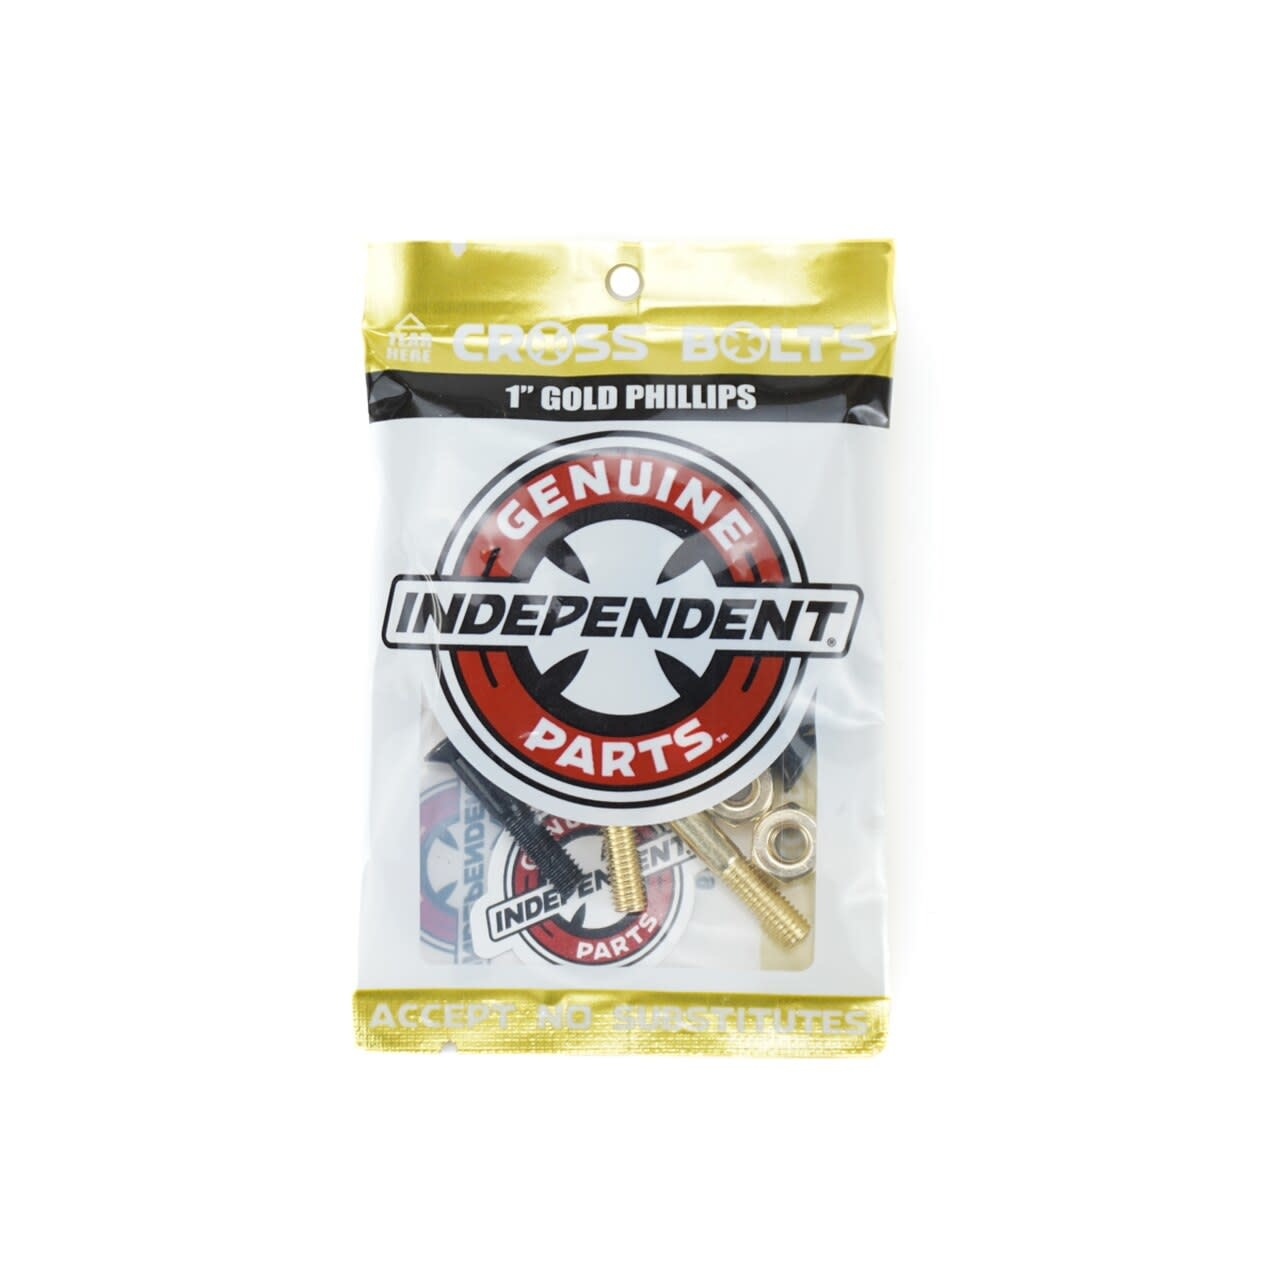 Independent Independent - Phillips Hardware Gold